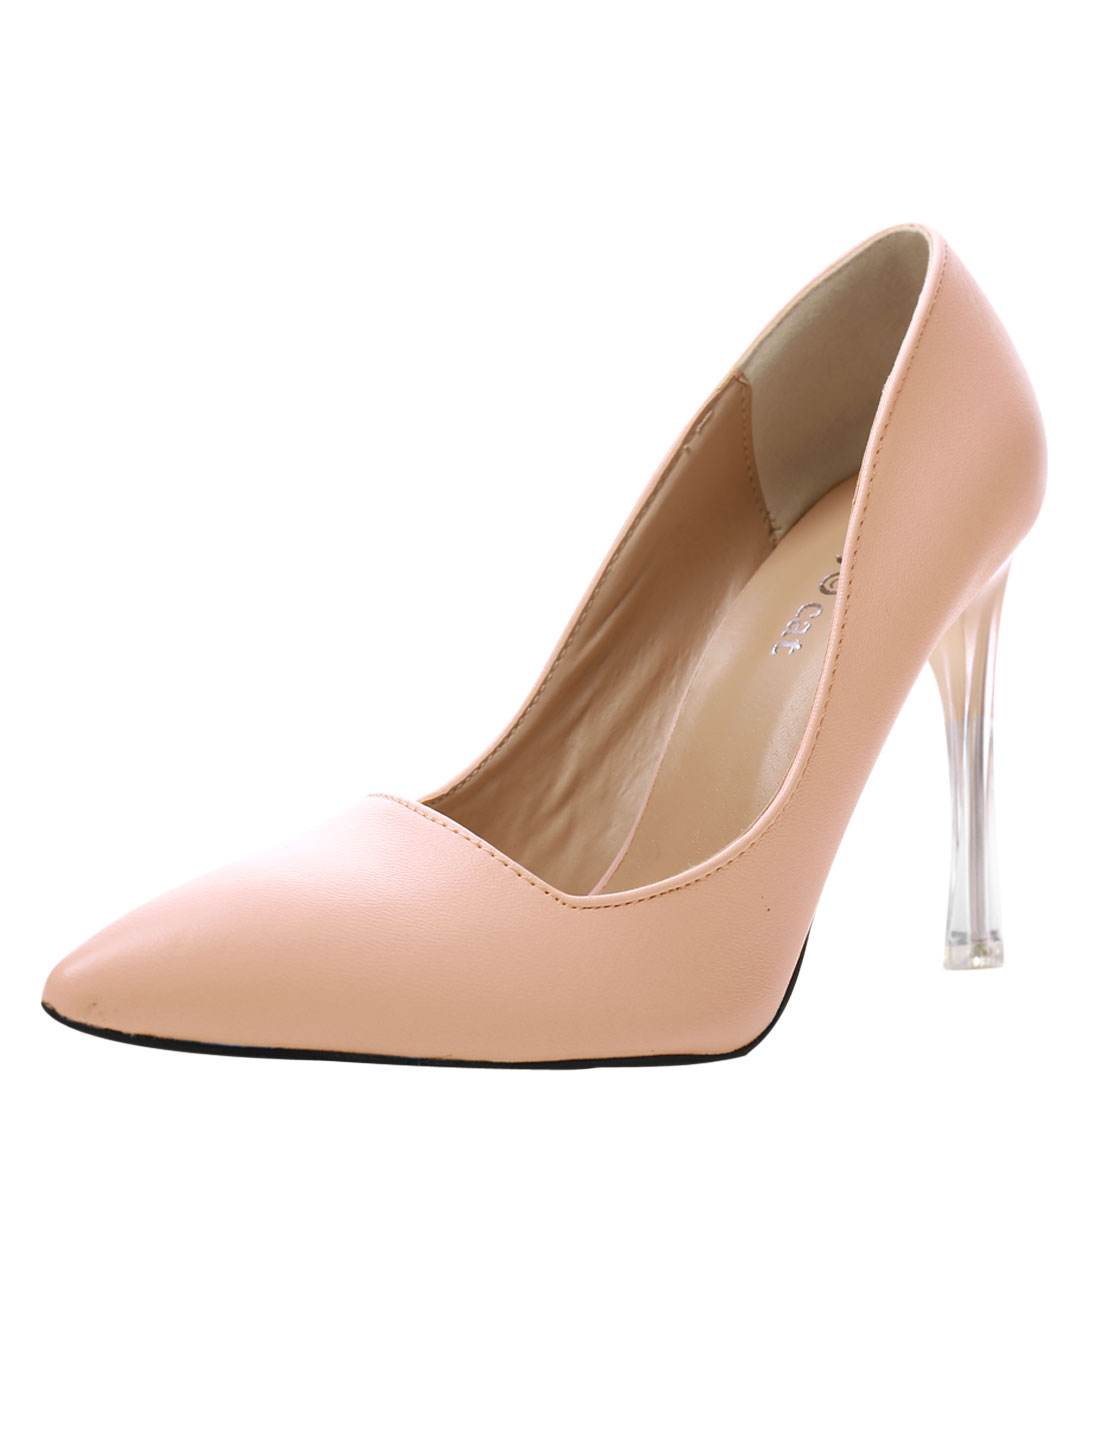 Ladies Translucent Stiletto Heel Pointed Pumps Nude Pink US 7